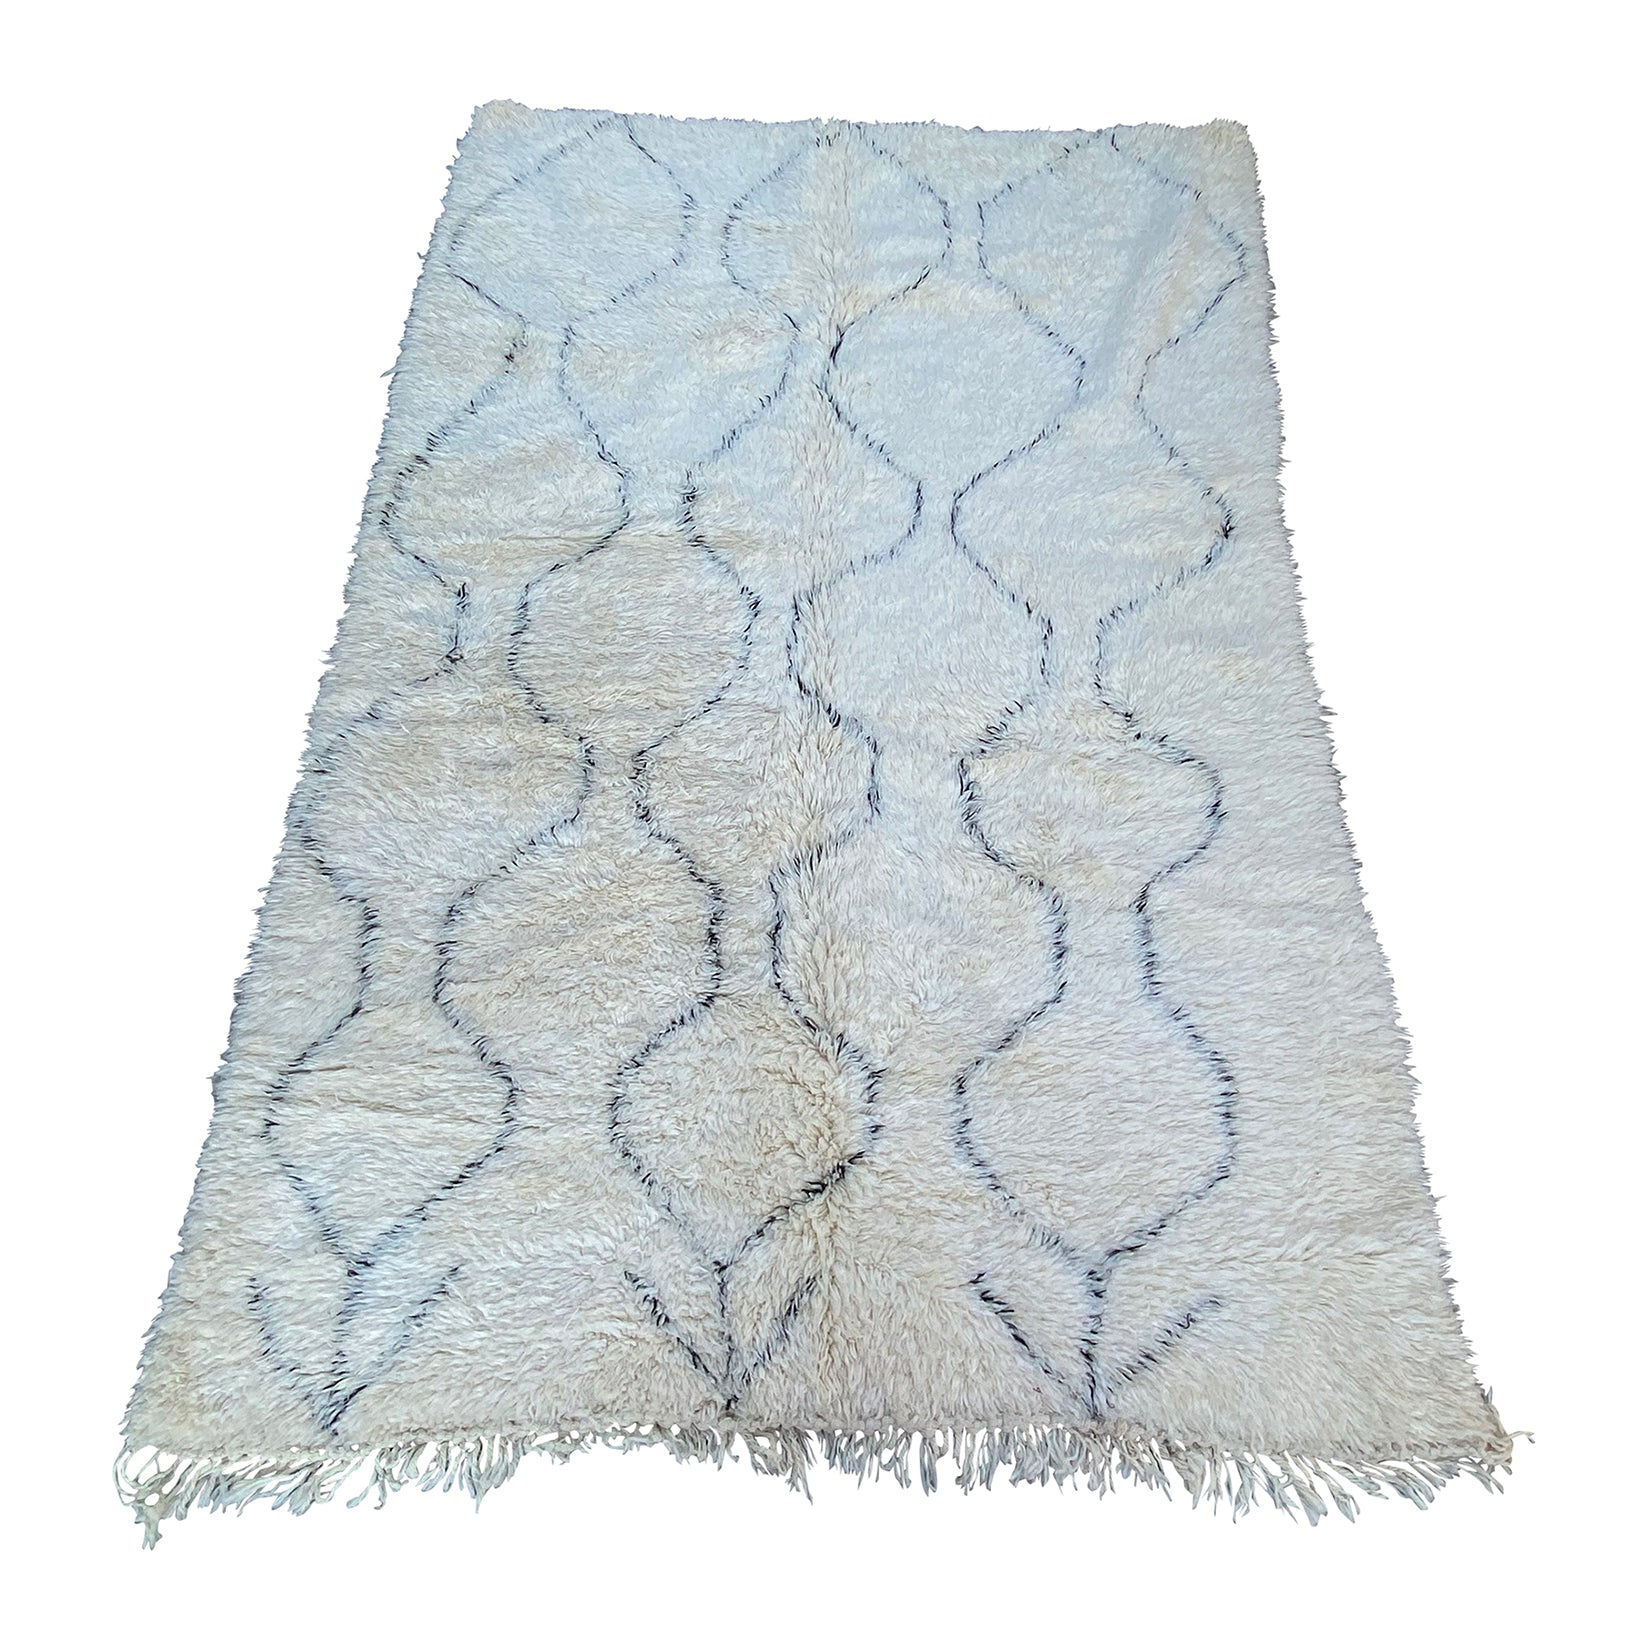 Large white berber carpet with geometric pattern design - Kantara | Moroccan Rugs